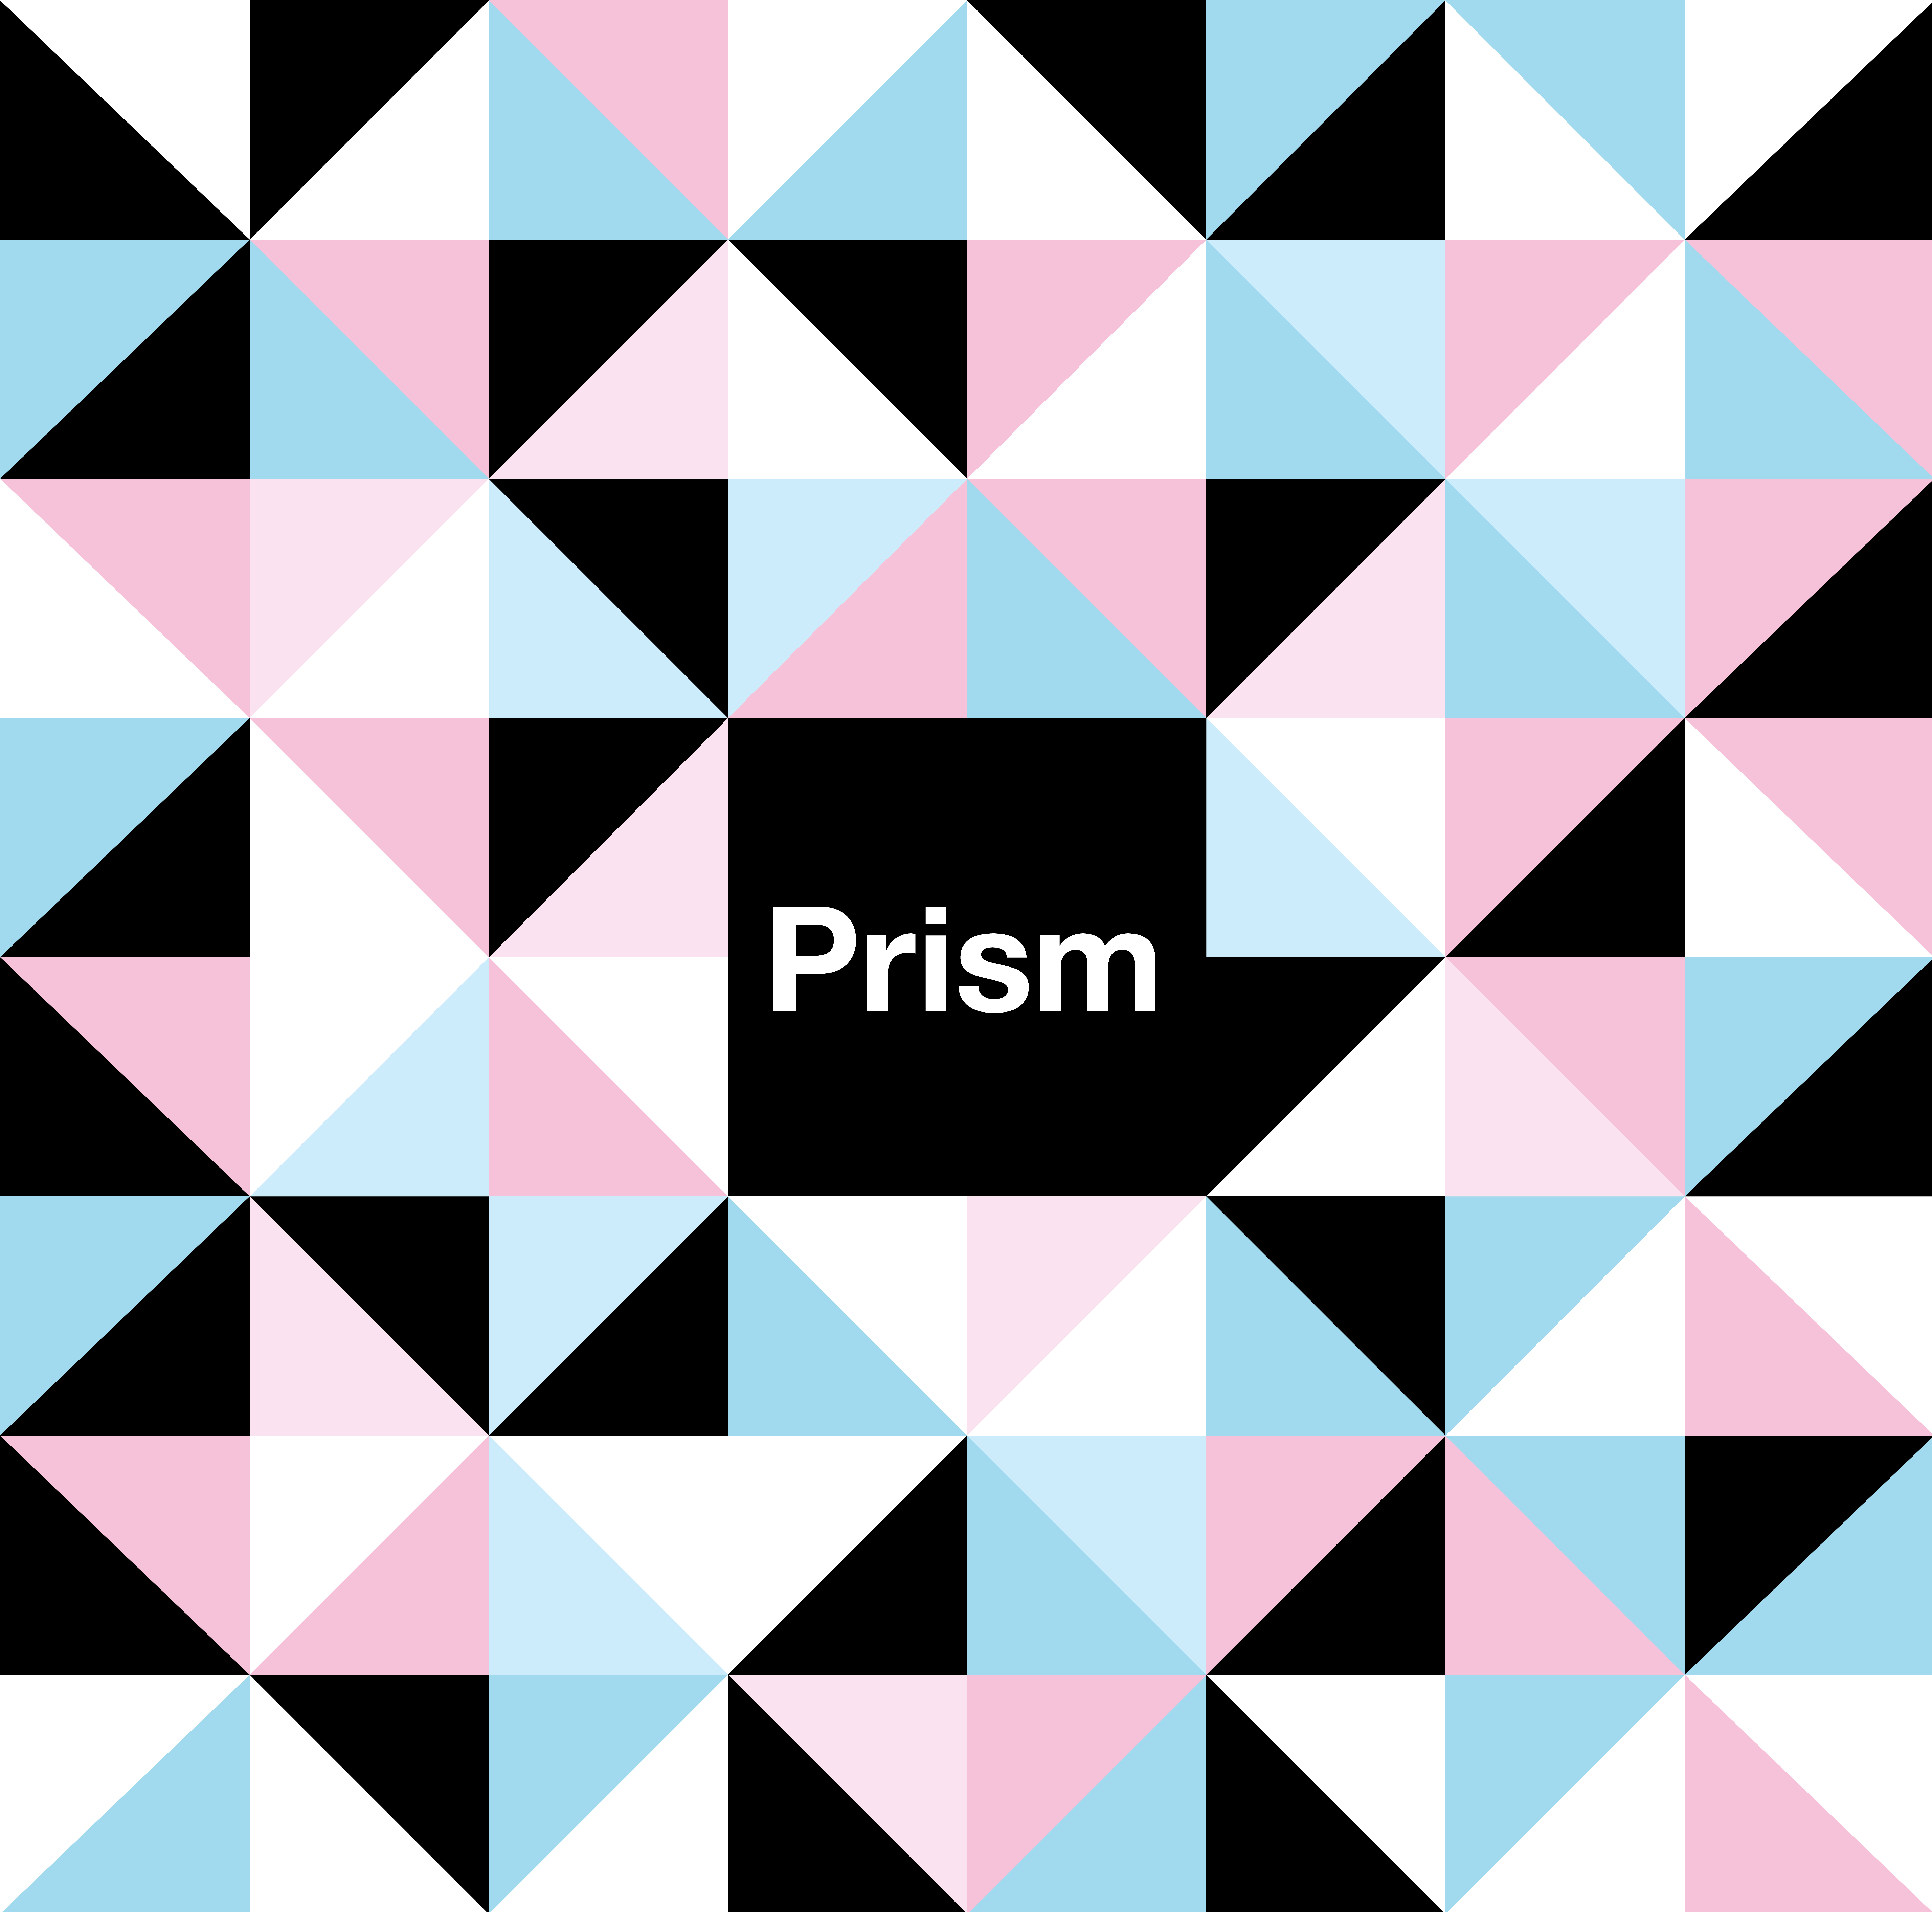 "<a href=""http://www.androp.jp/news/detail/2926/"" target=""_blank"">new single 「Prism」<br>2017.05.10 release.</a>"